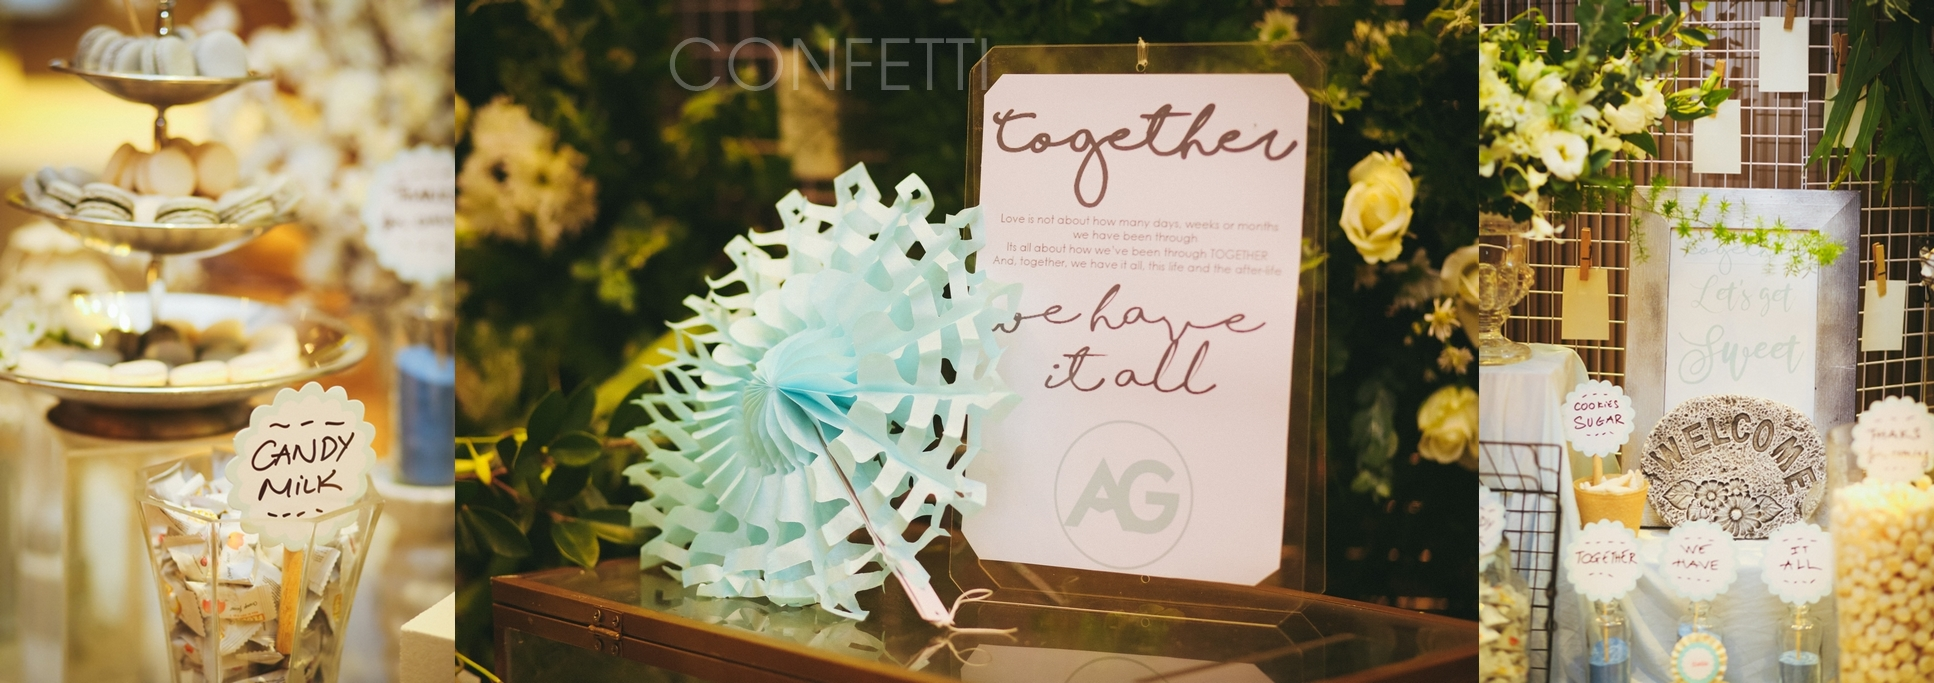 Confetti-real-wedding-Together-we-have-it-all (76)